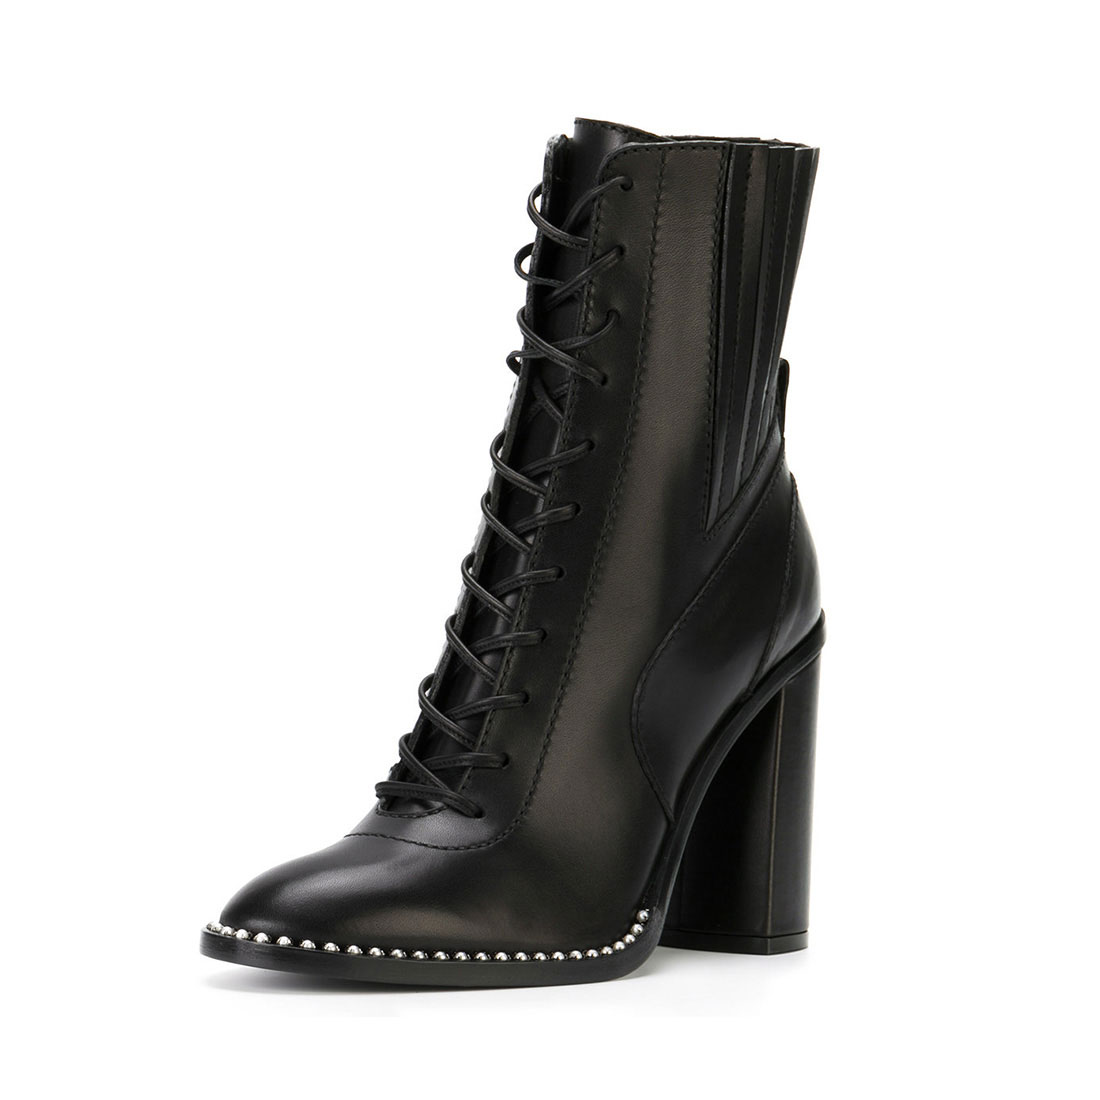 With the rivet leather round toe high heels ladies boots YB3057